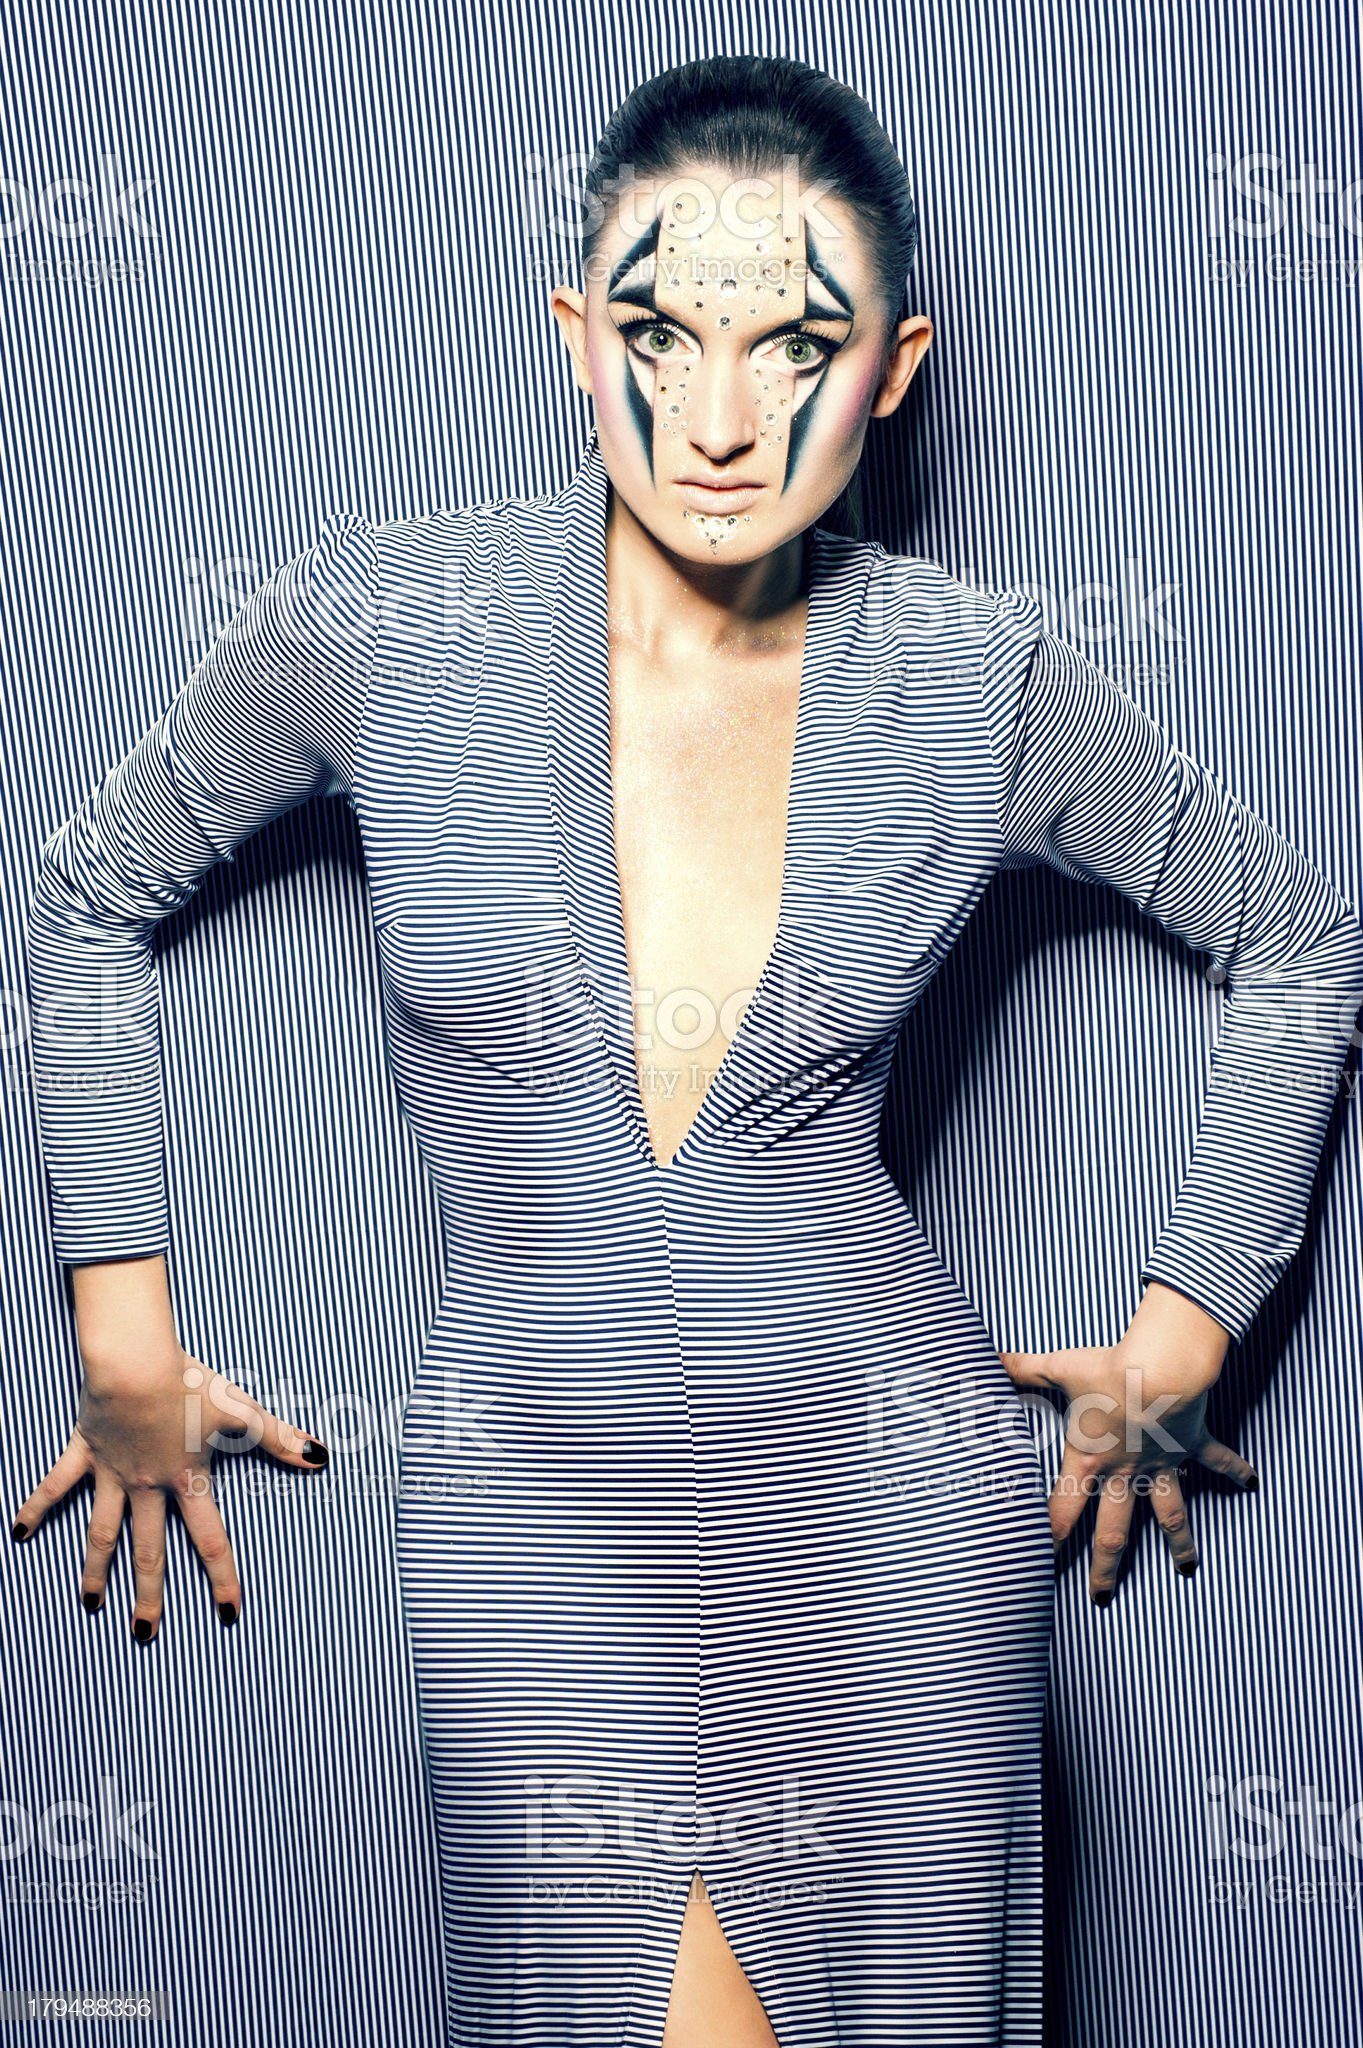 girl in a striped background with psychedelic art make-up royalty-free stock photo